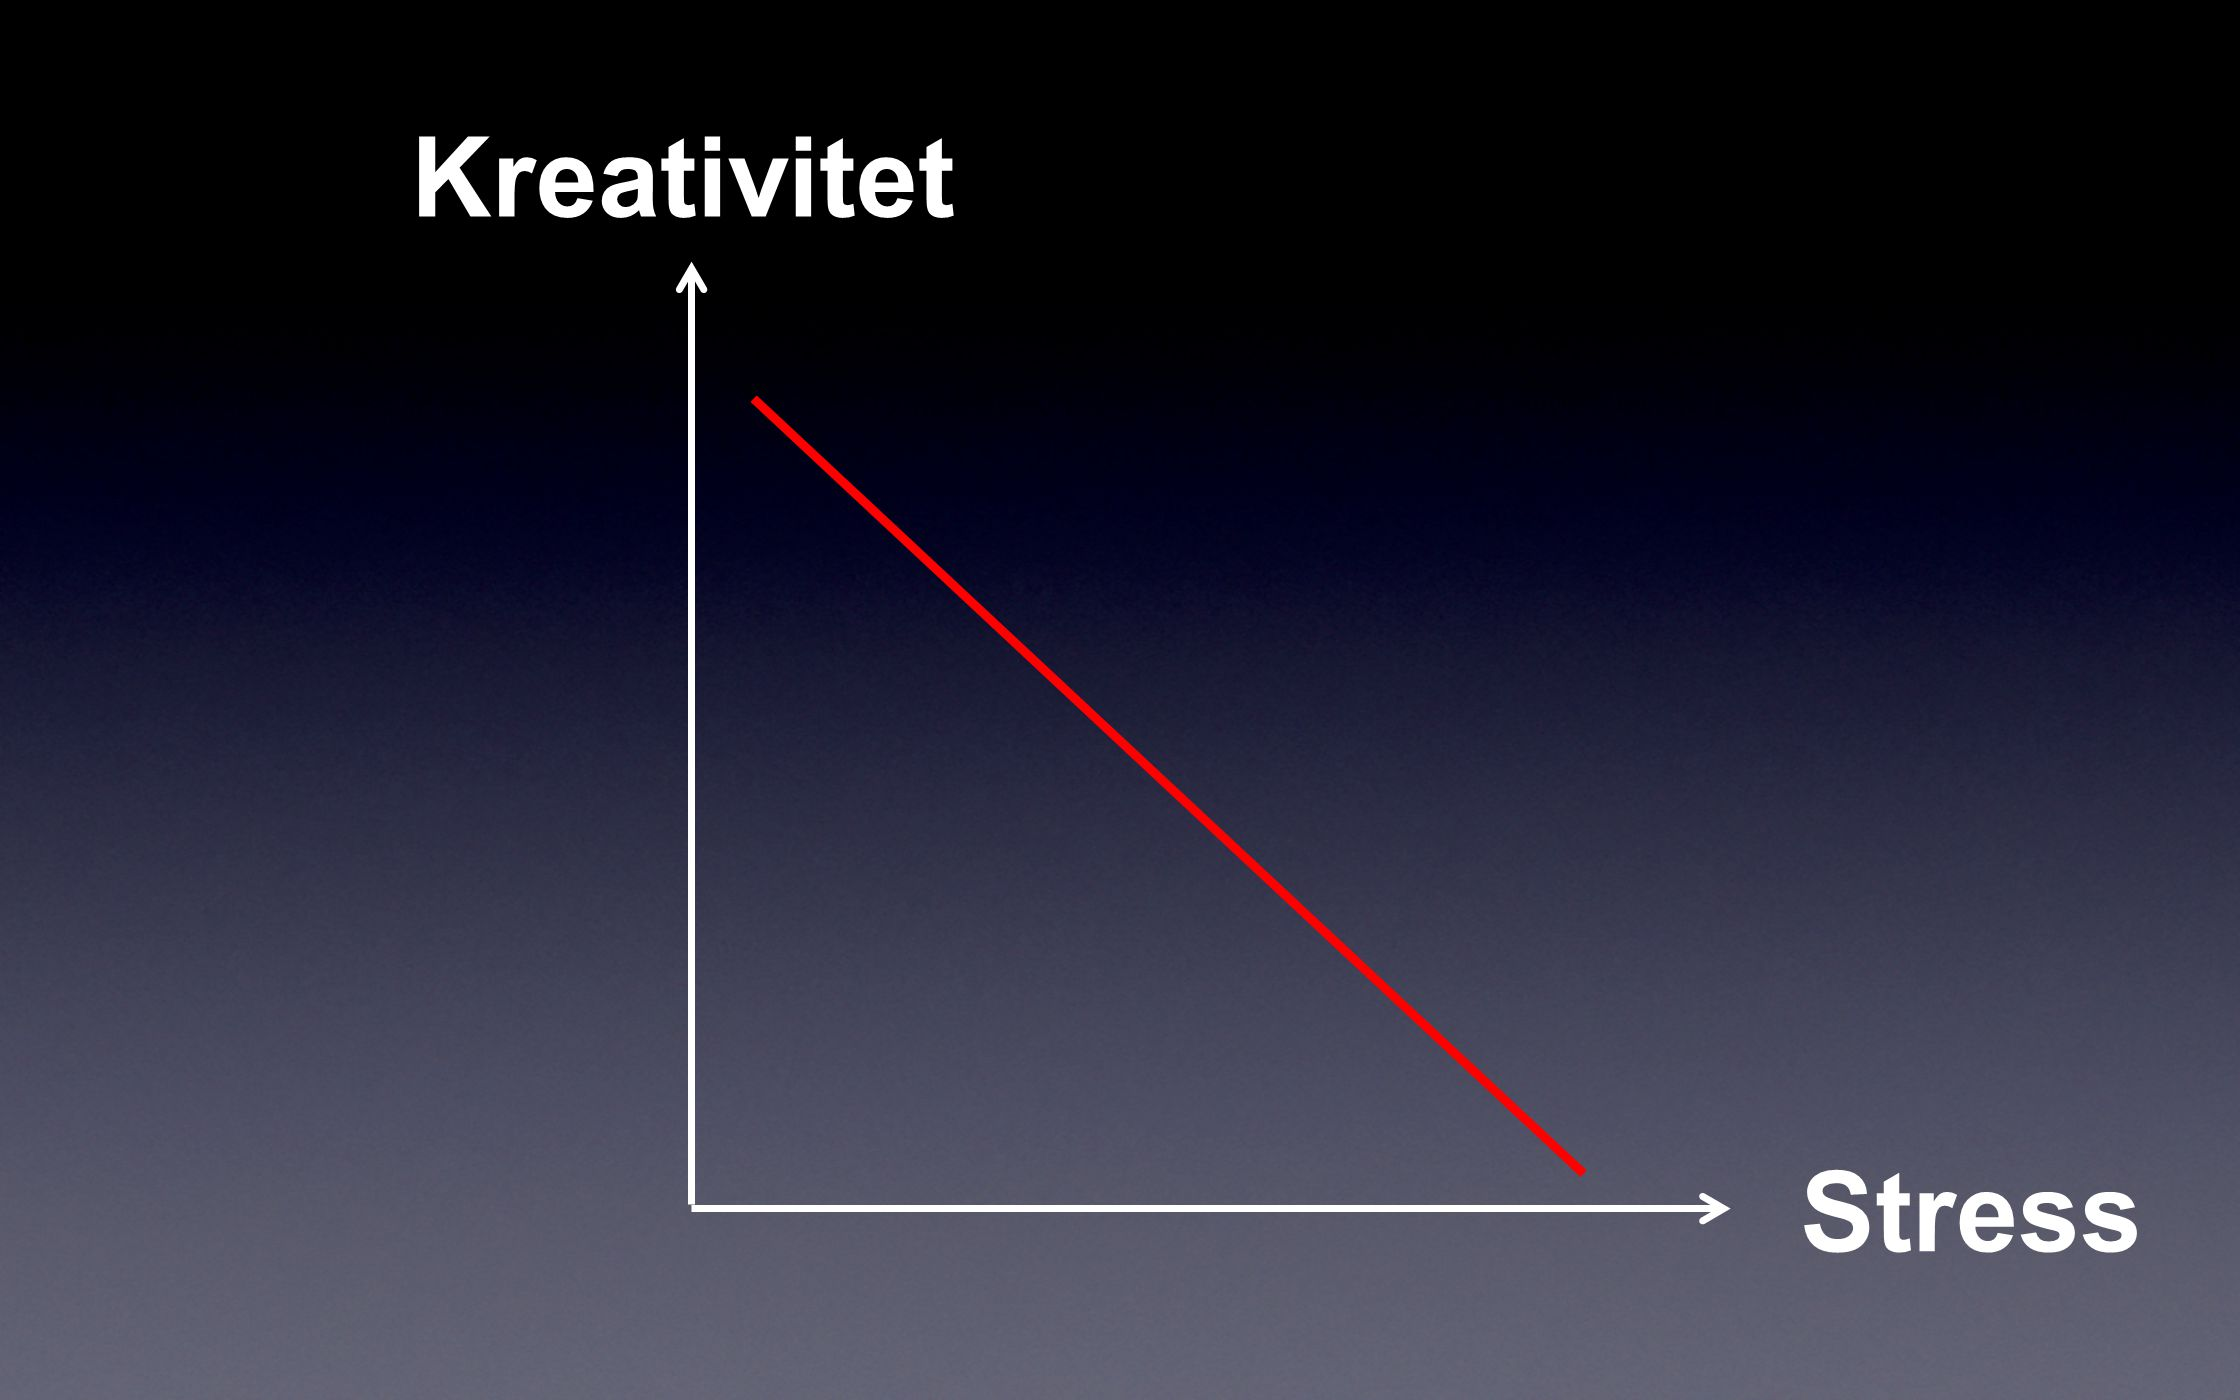 Kreativitet Stress